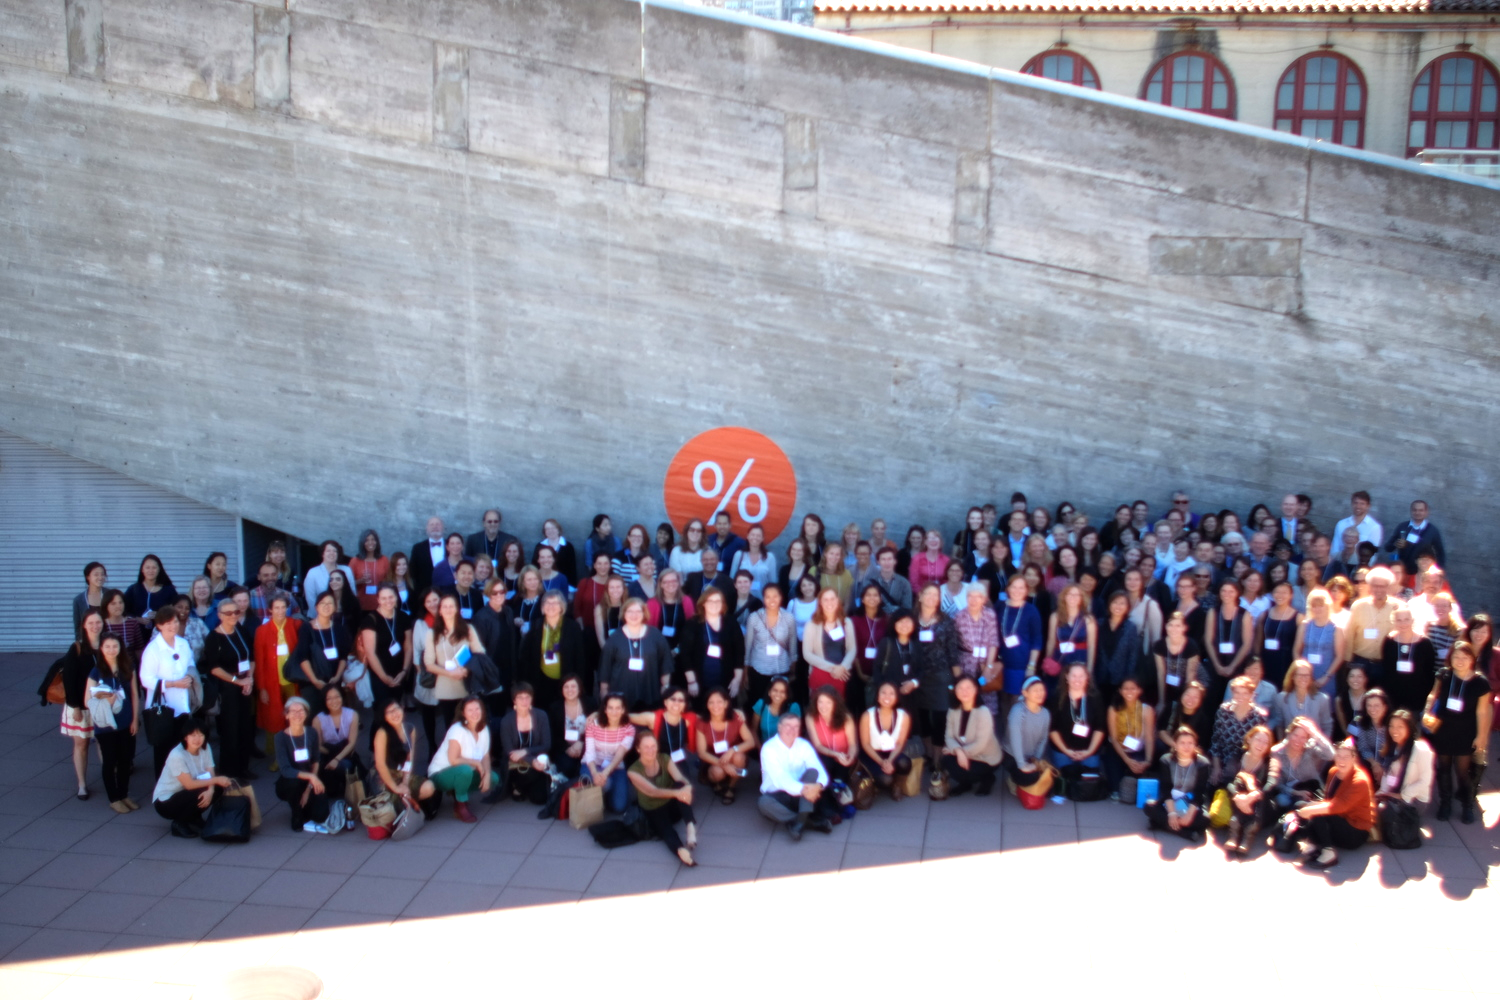 Equity by Design Symposium 2014: Group Photo at San Francisco Art Institute (photo credit:Daniel Wang)